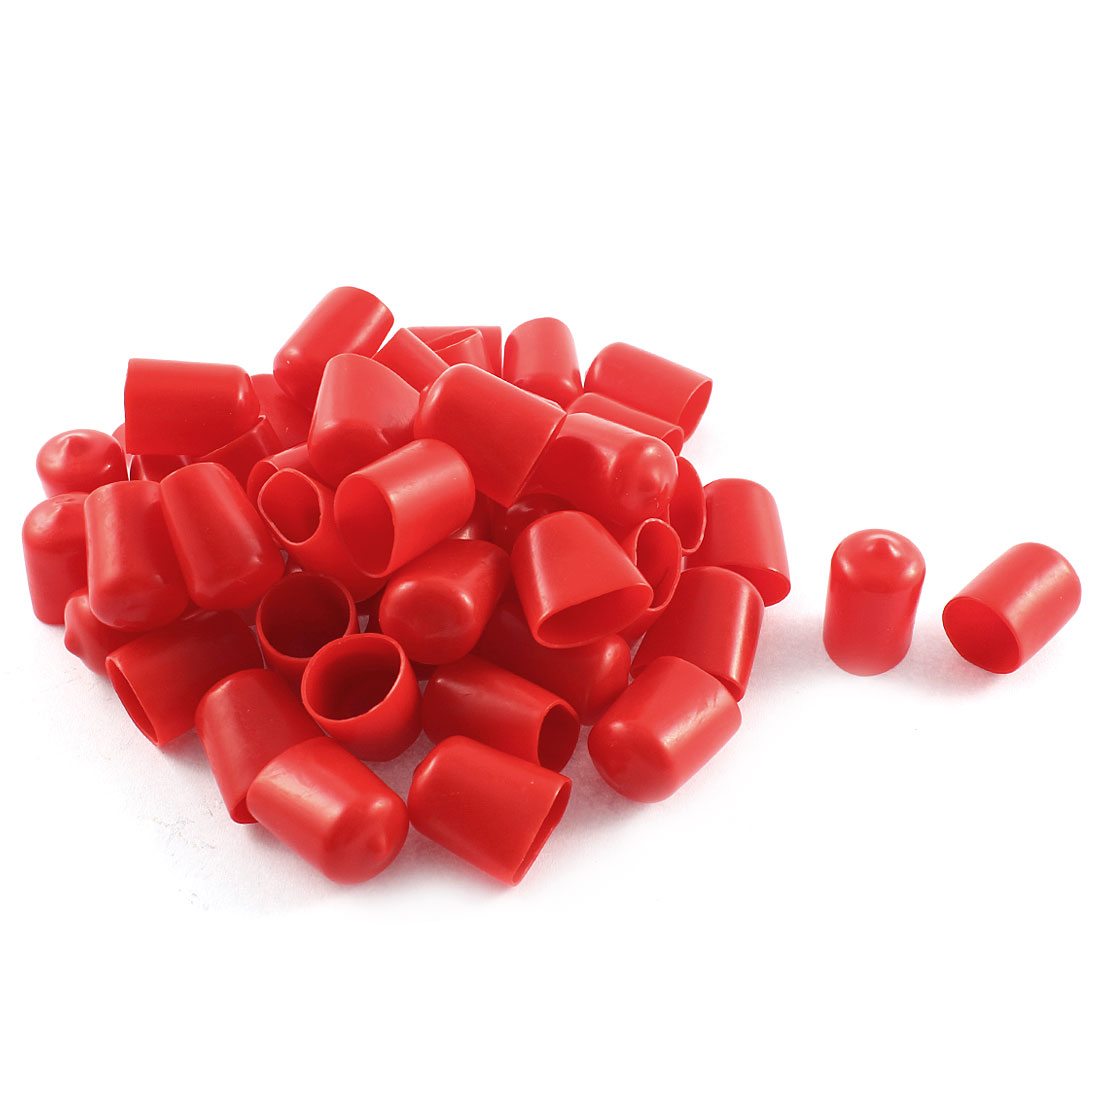 50Pcs Red Soft Plastic PVC Insulated End Sleeves Caps Cover 16mm Dia